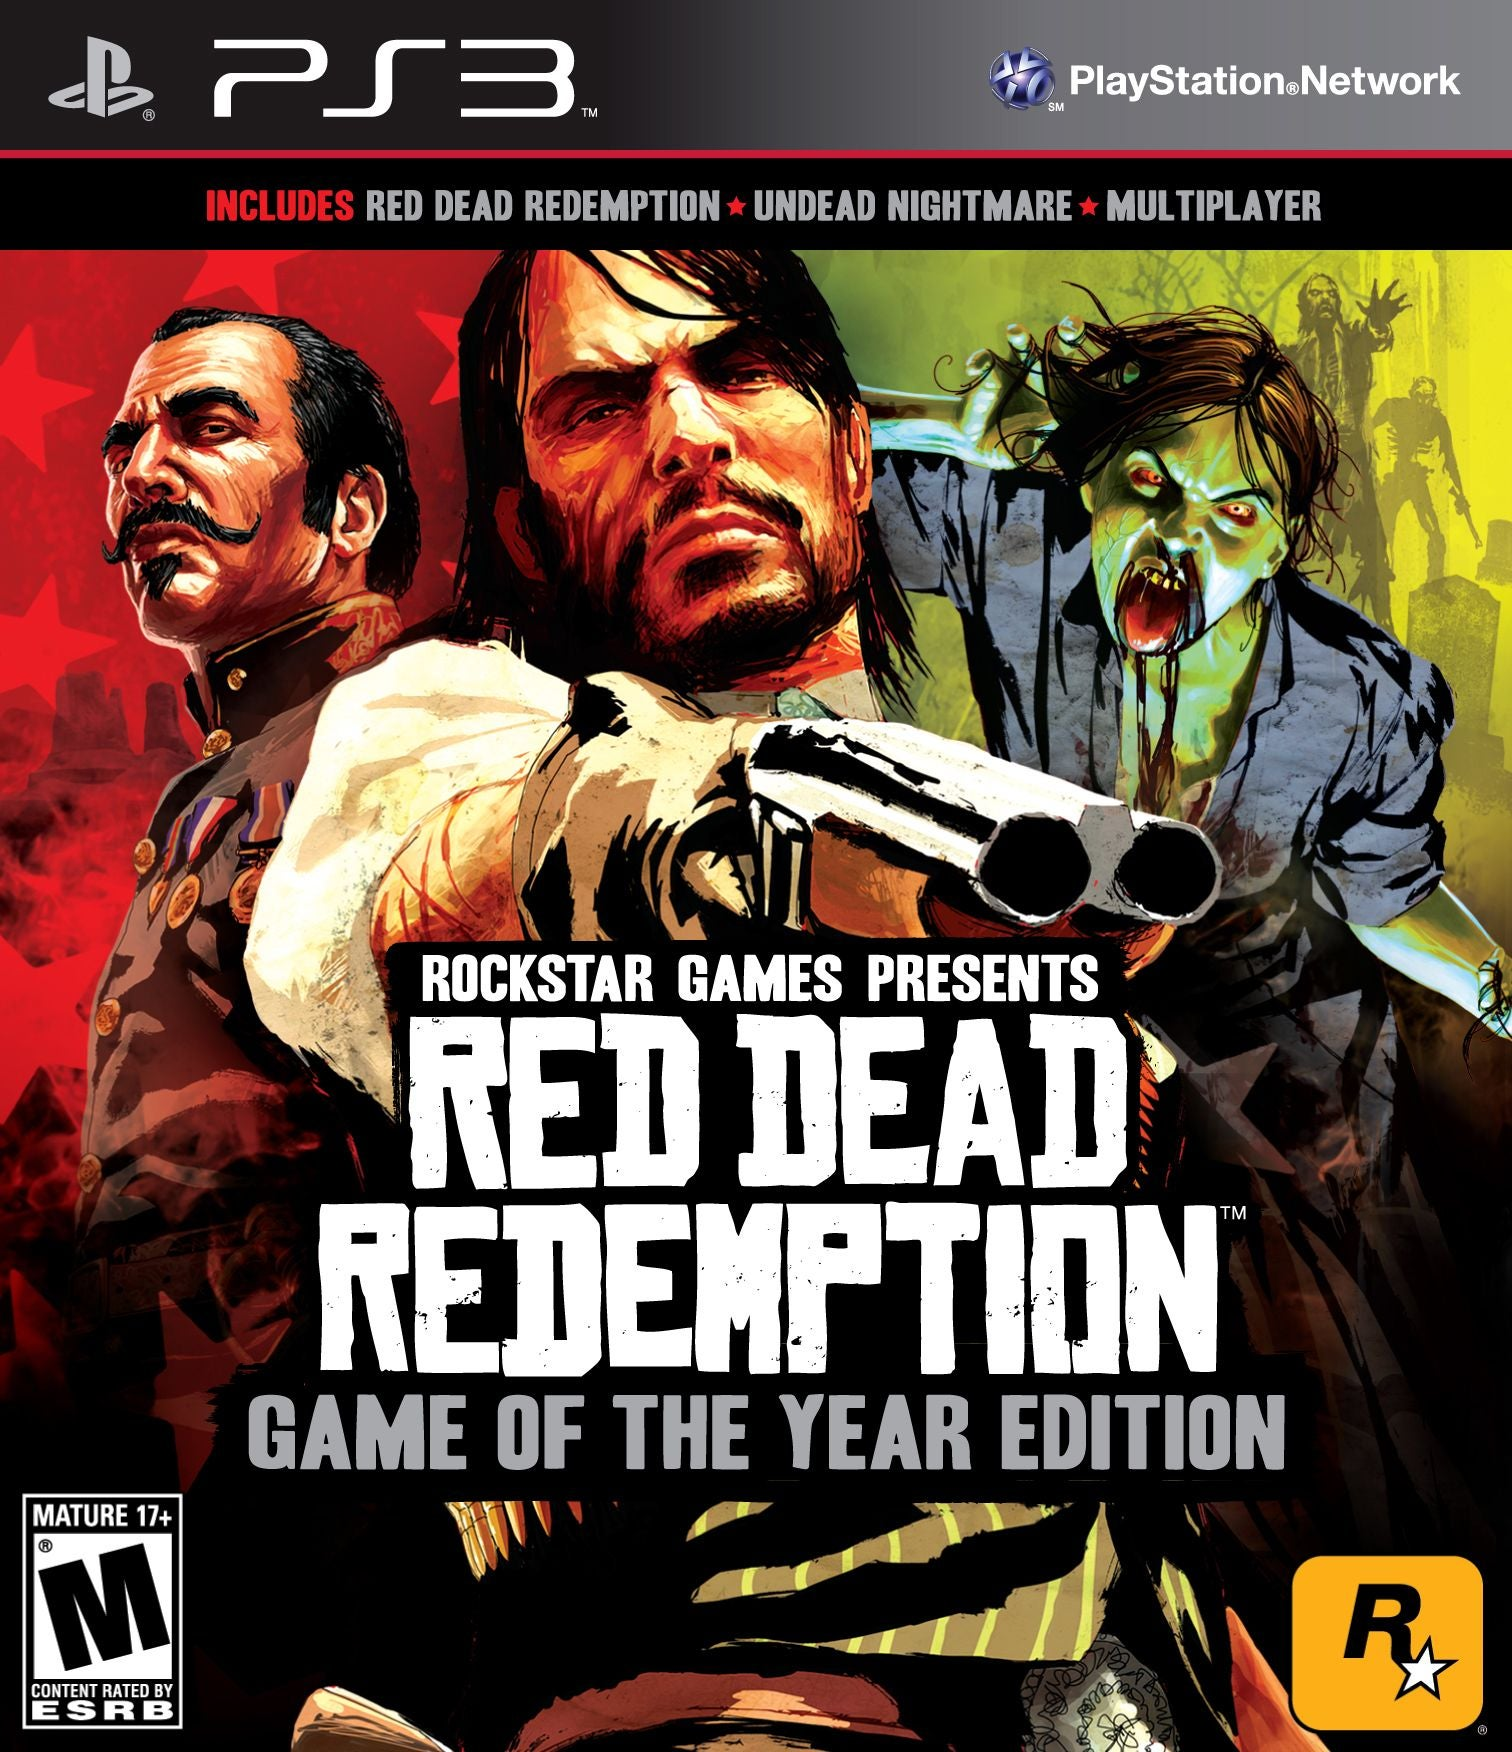 Edition For Ps3 Red Dead Redemption Game Of The Year Edition Ign